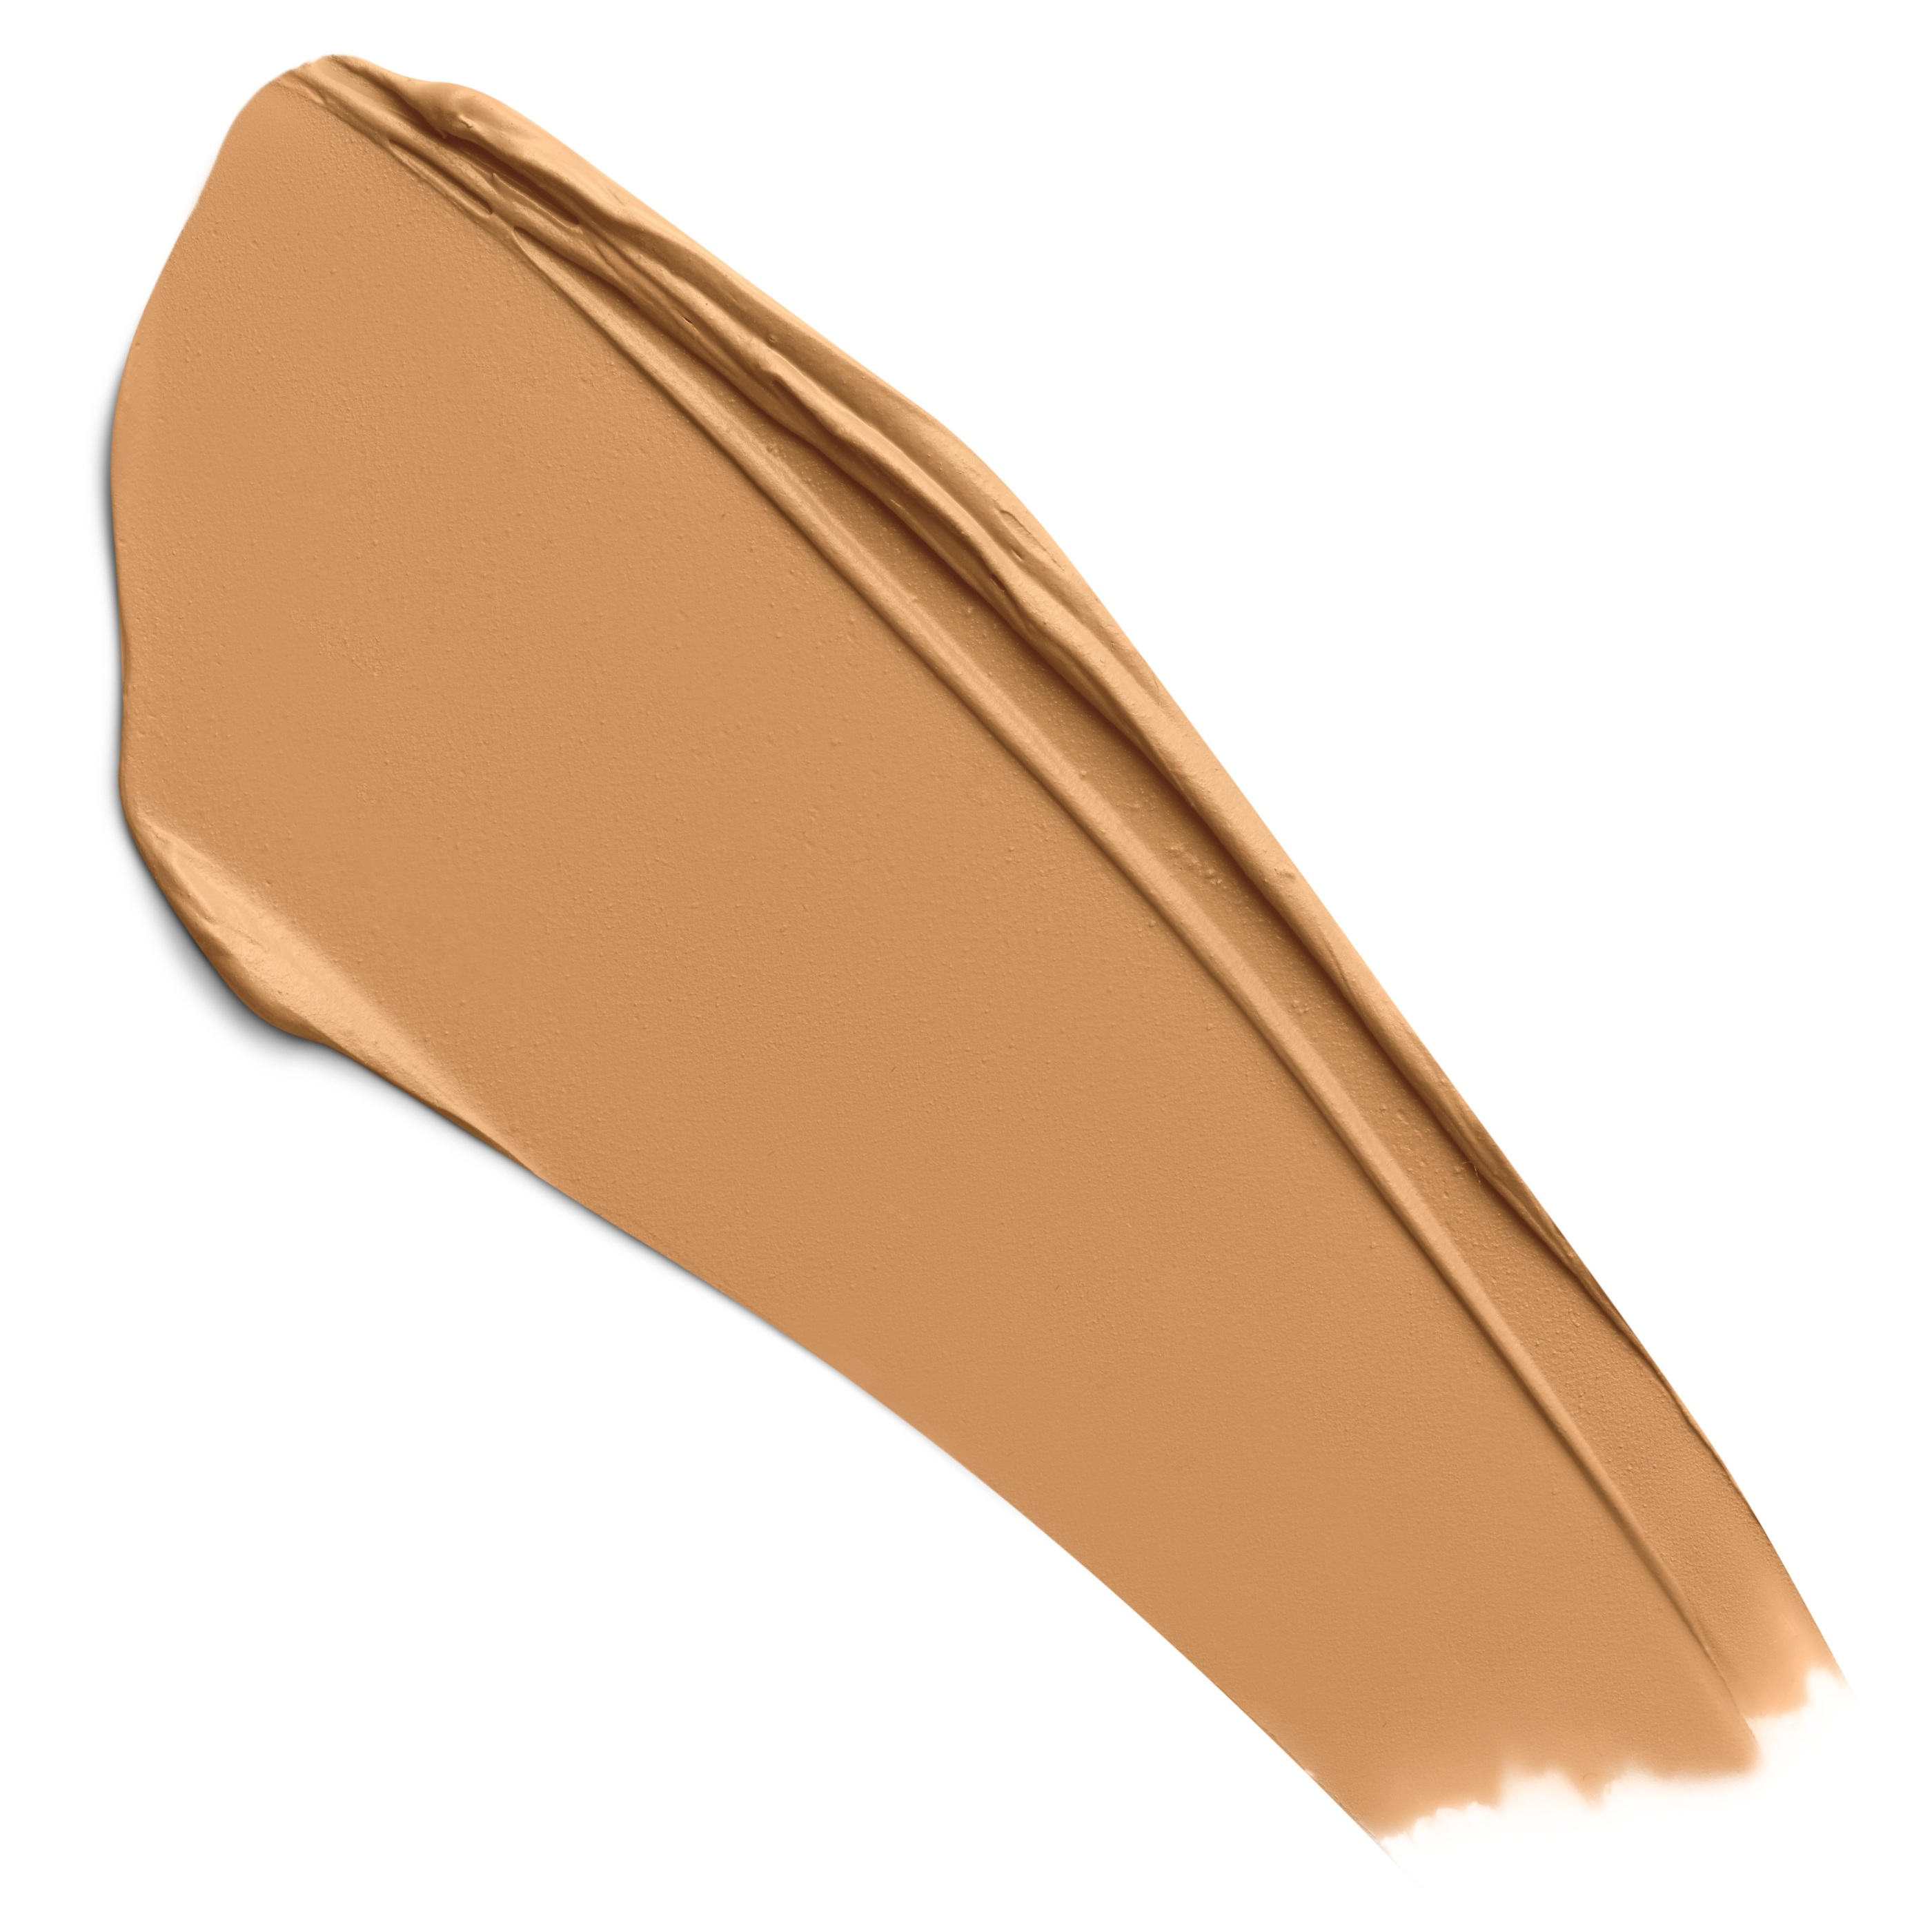 Complexion_Rescue_Hydrating_Foundation_Stick_SPF_25_Spice_08_smear